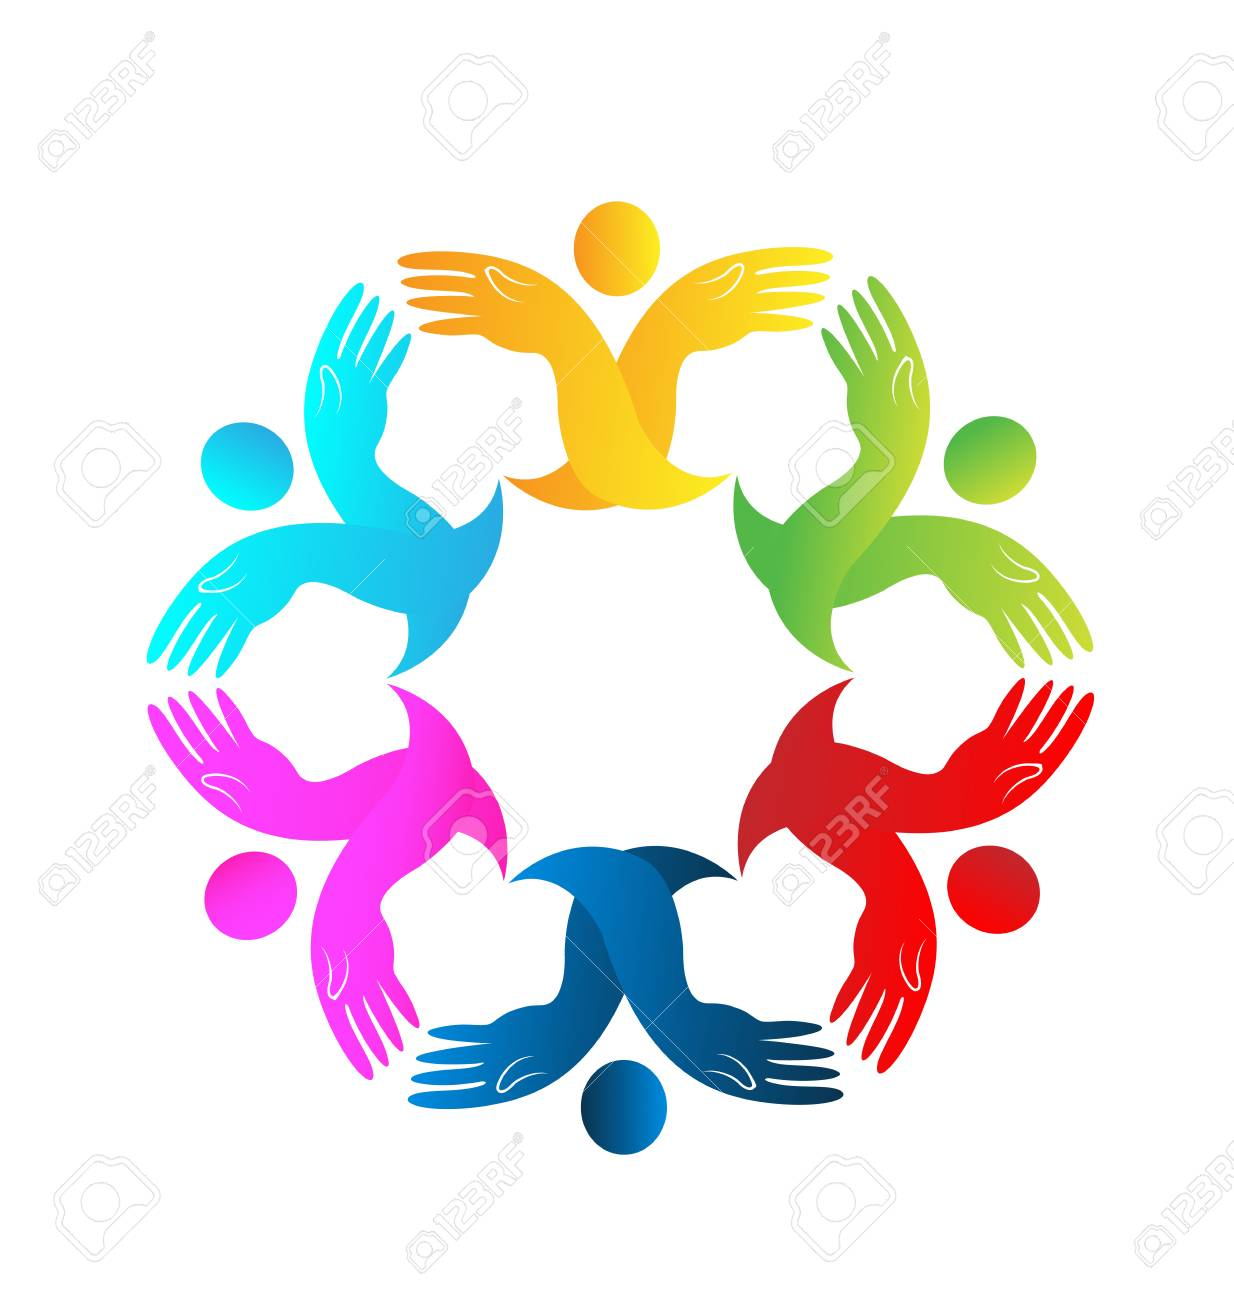 teamwork people holding hands together vector logo royalty free rh 123rf com